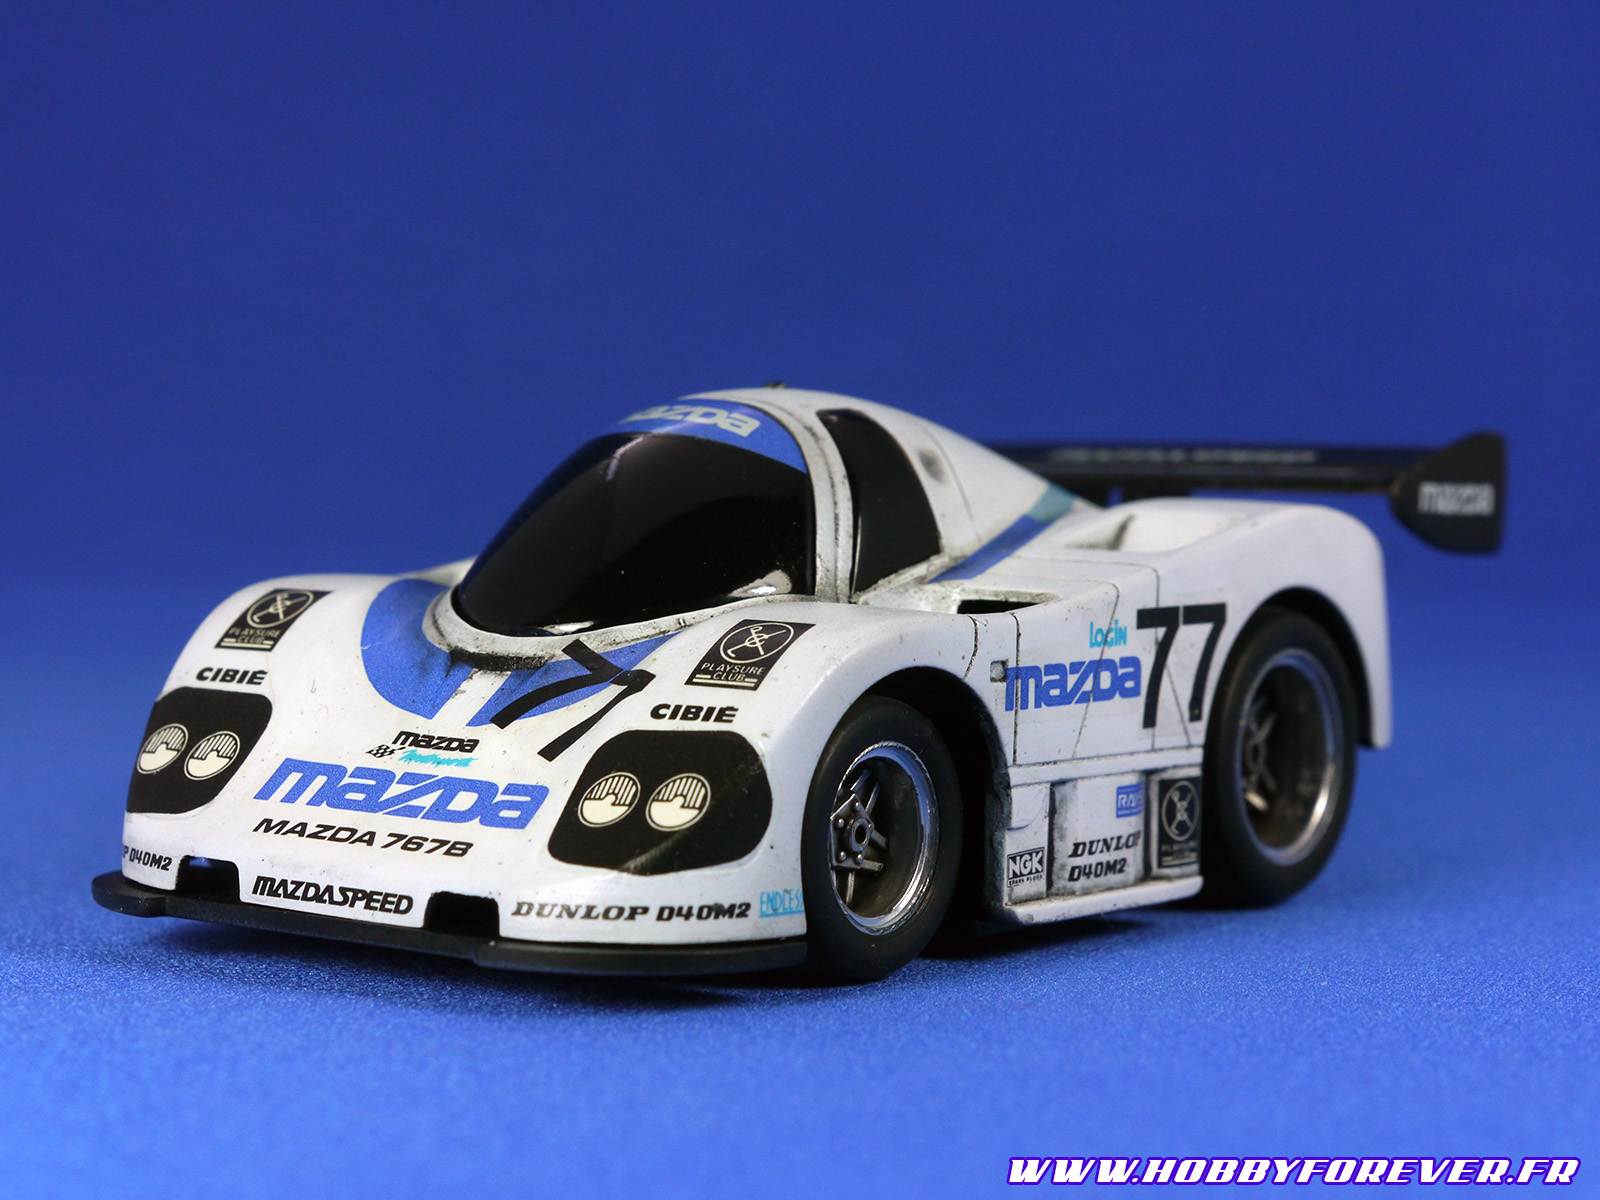 Daytona Mazda 767B – Mid-Racer Collection de Mitsuwa